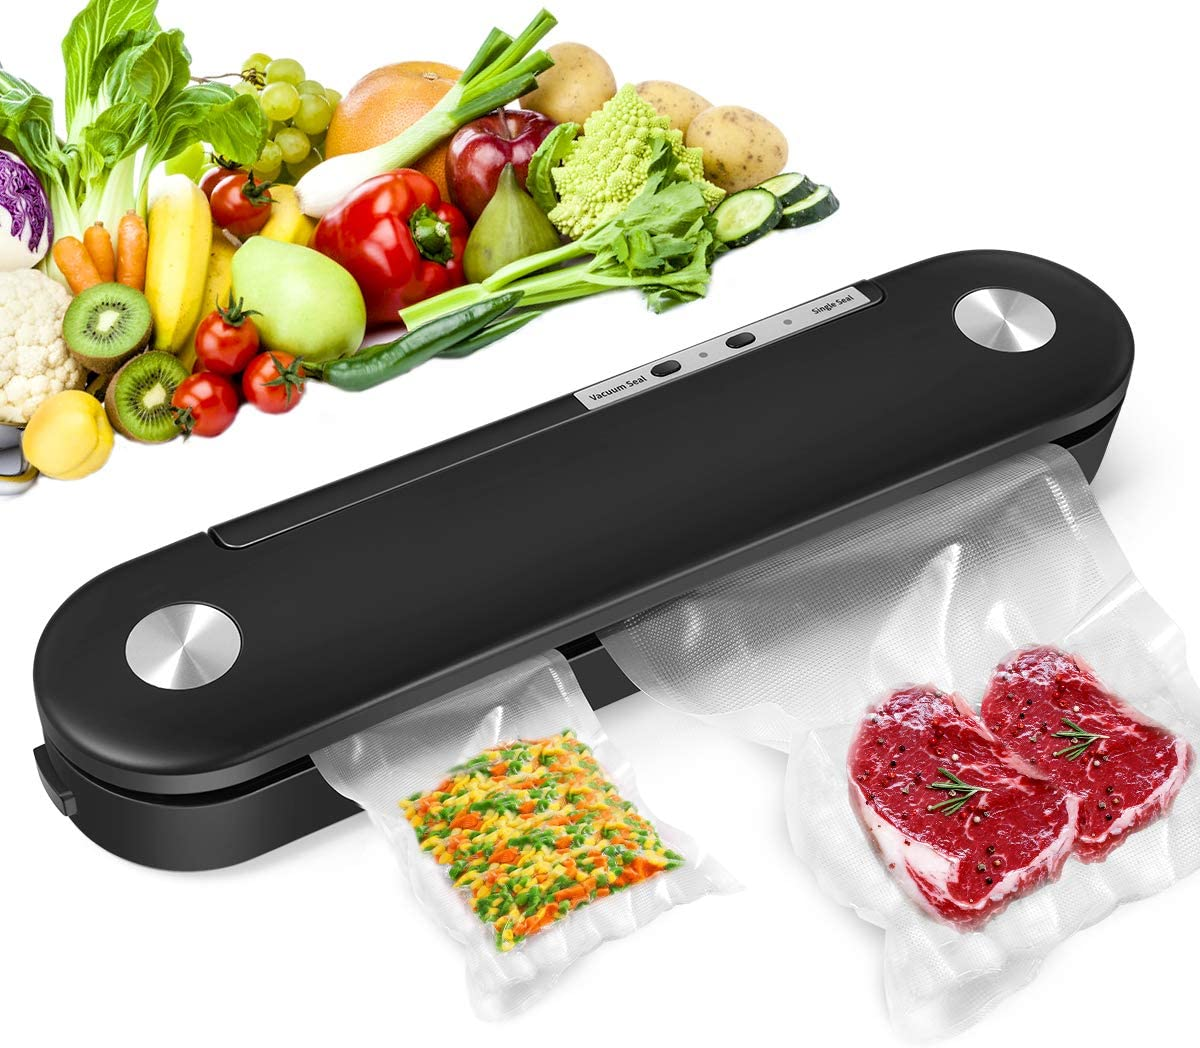 Vacuum Sealer Machine, 2021 Automatic Food Sealer Air Sealing System for Food Saver Storage, Heavy Duty Vacuum Packing Machine Portable Heat Sealer with 10 Vacuum Sealing Bags, Dry & Moist Modes, Led Indicator Lights, Compact Design